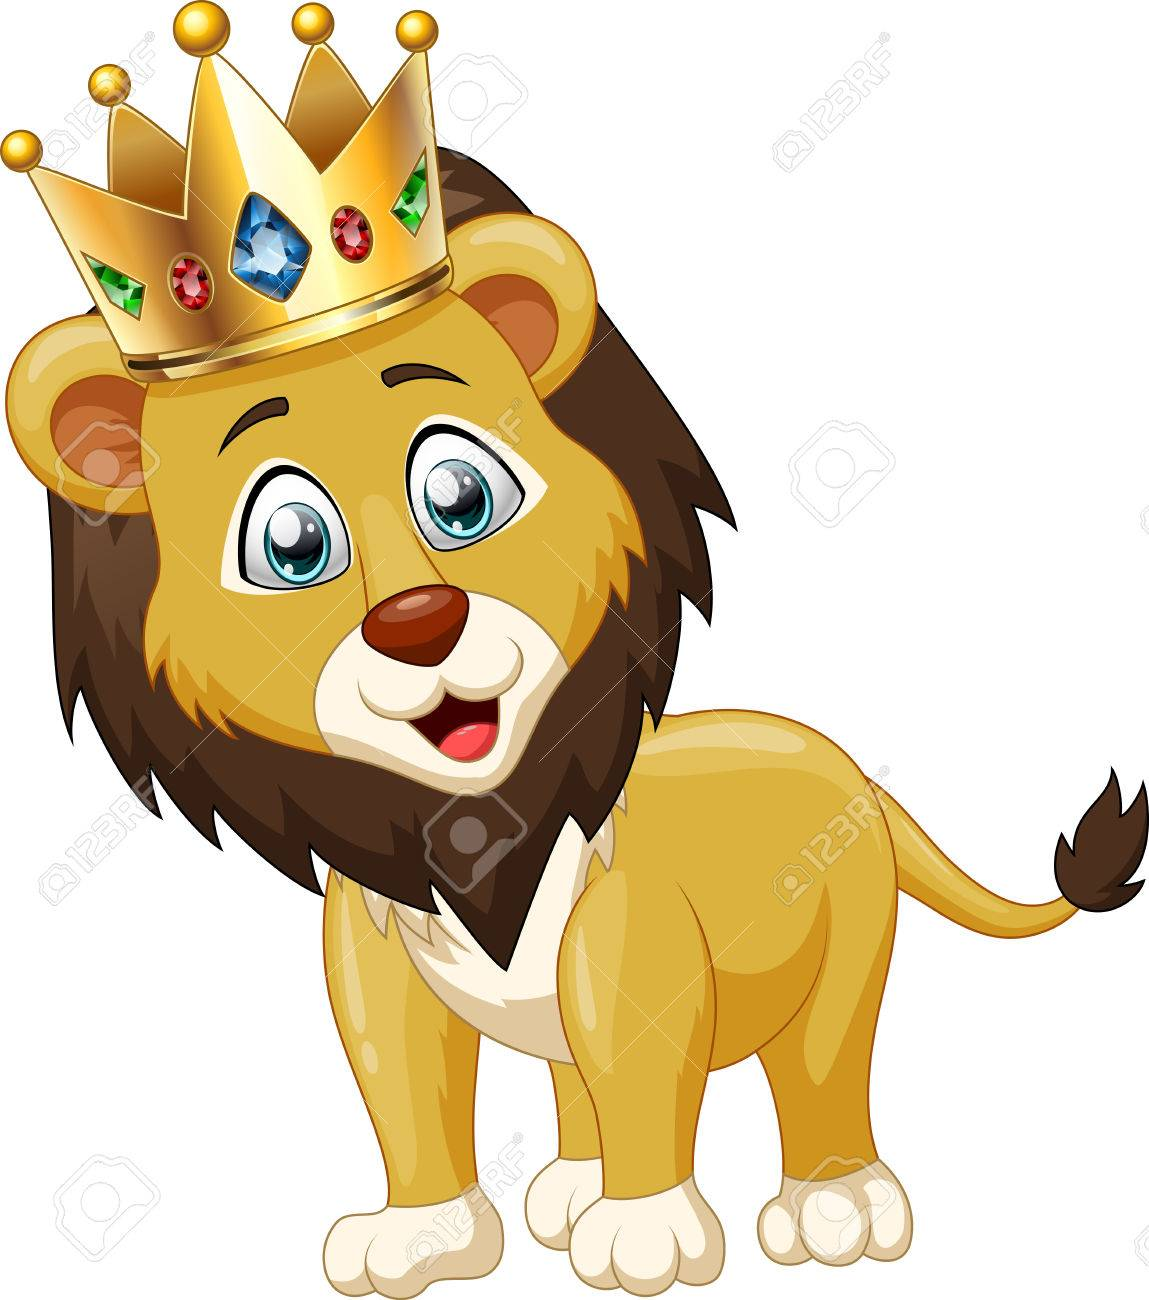 Cute lion king cartoon. Vector illustration.